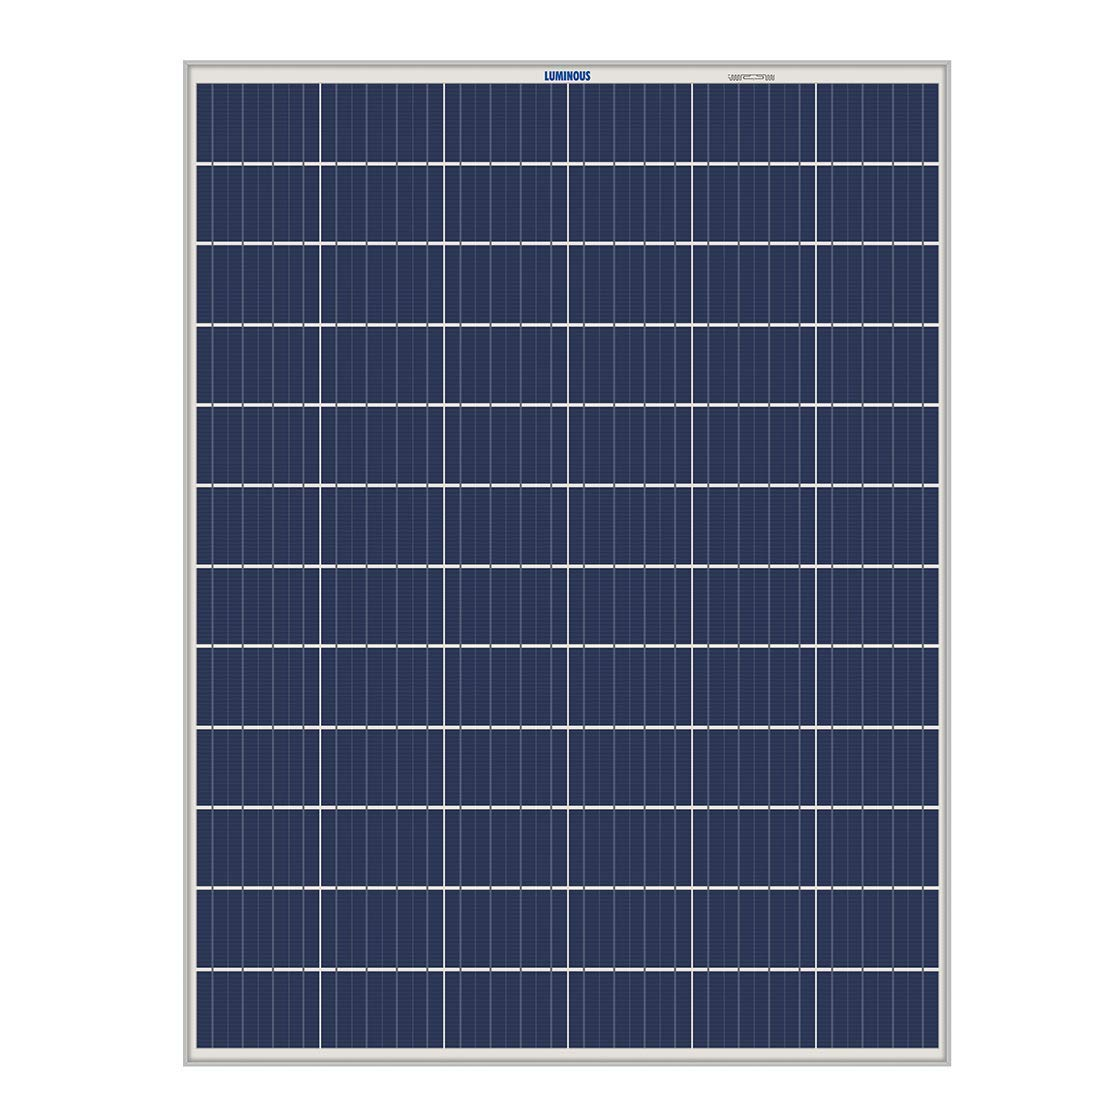 Luminous Solar  PV Panel 325W/24V 72 Cells RFID Poly-crystalline